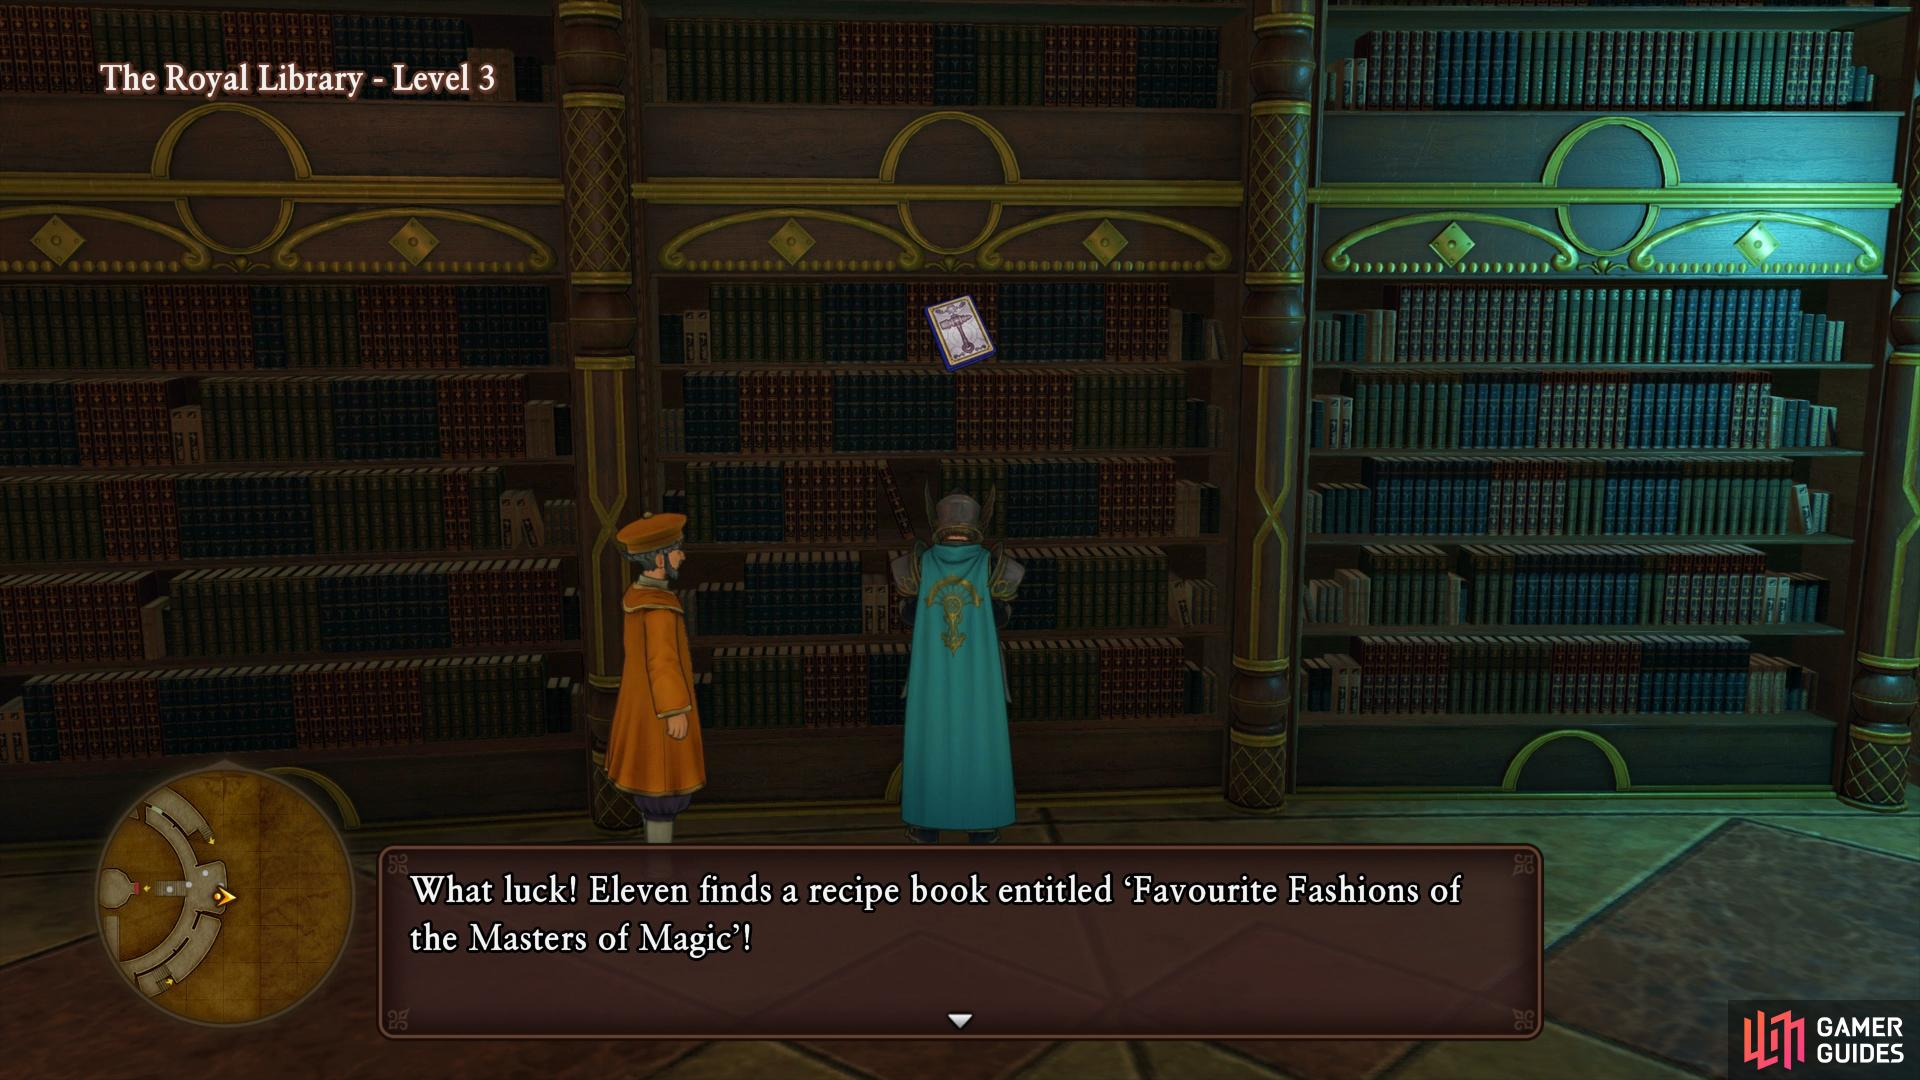 Search the bookshelf on Level 3 as you come up from Level 2